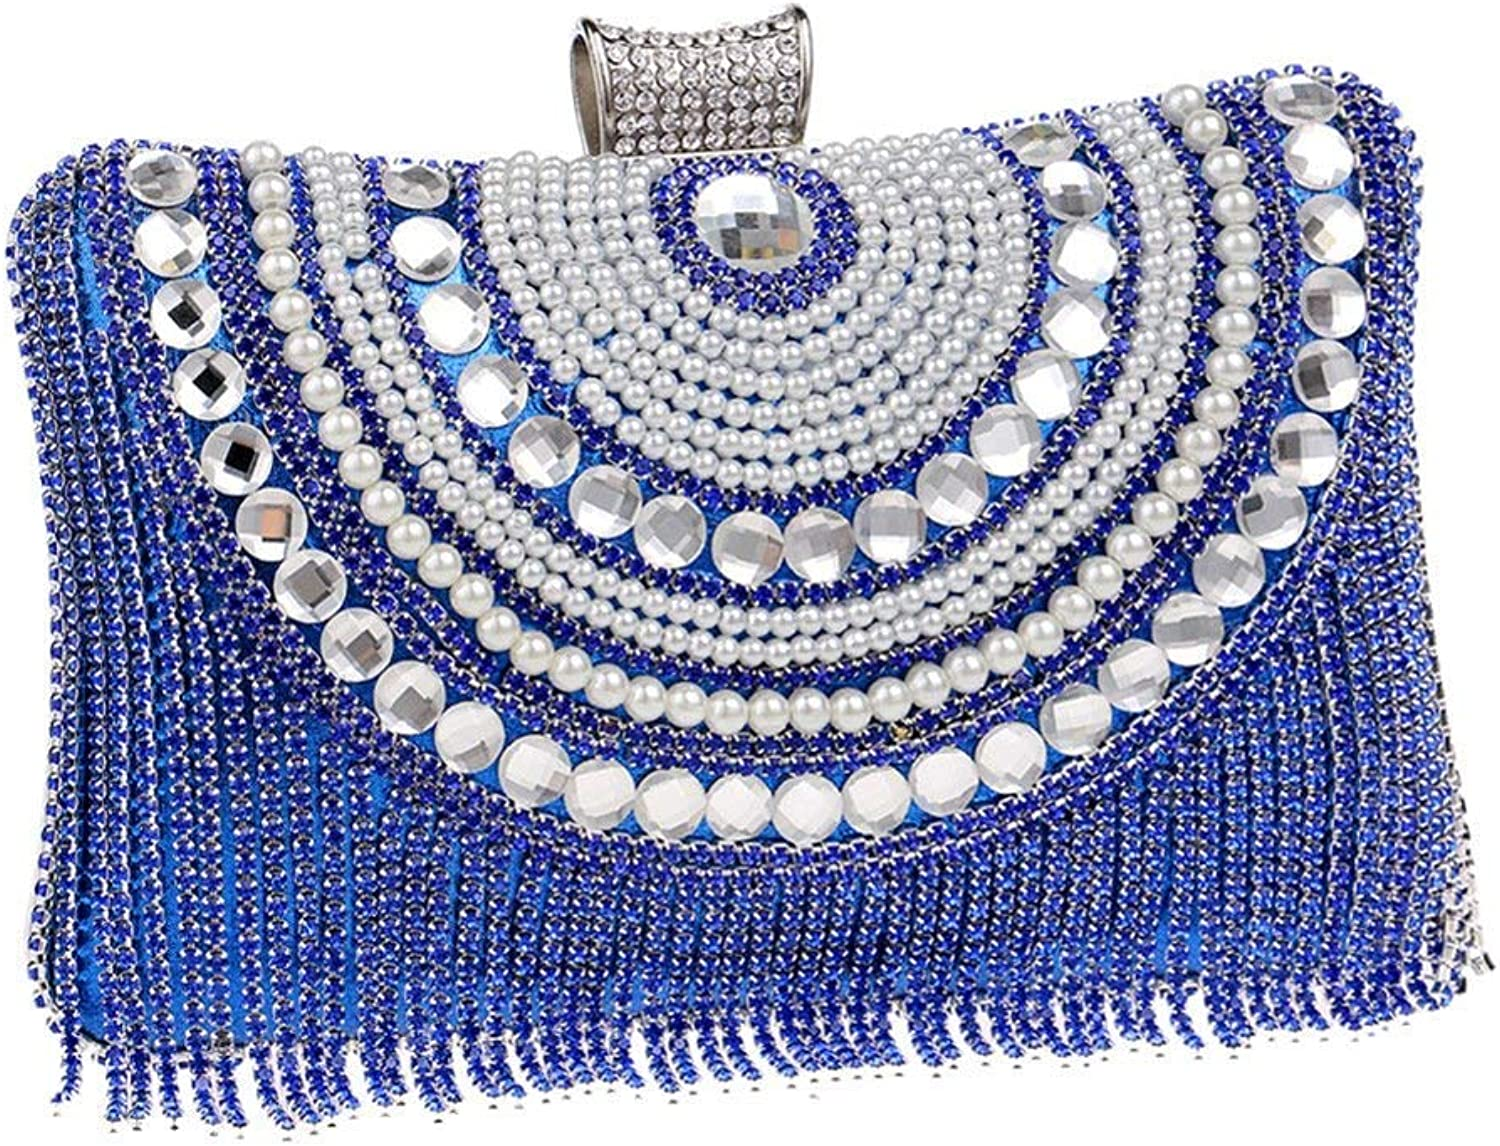 Ladies Handbag Women's Crystal Clutches Bridal Evening Bags Diamond Evening Bag with Shoulder Chain Included (color   B, Size   6x12x20cm(2x5x8inch))